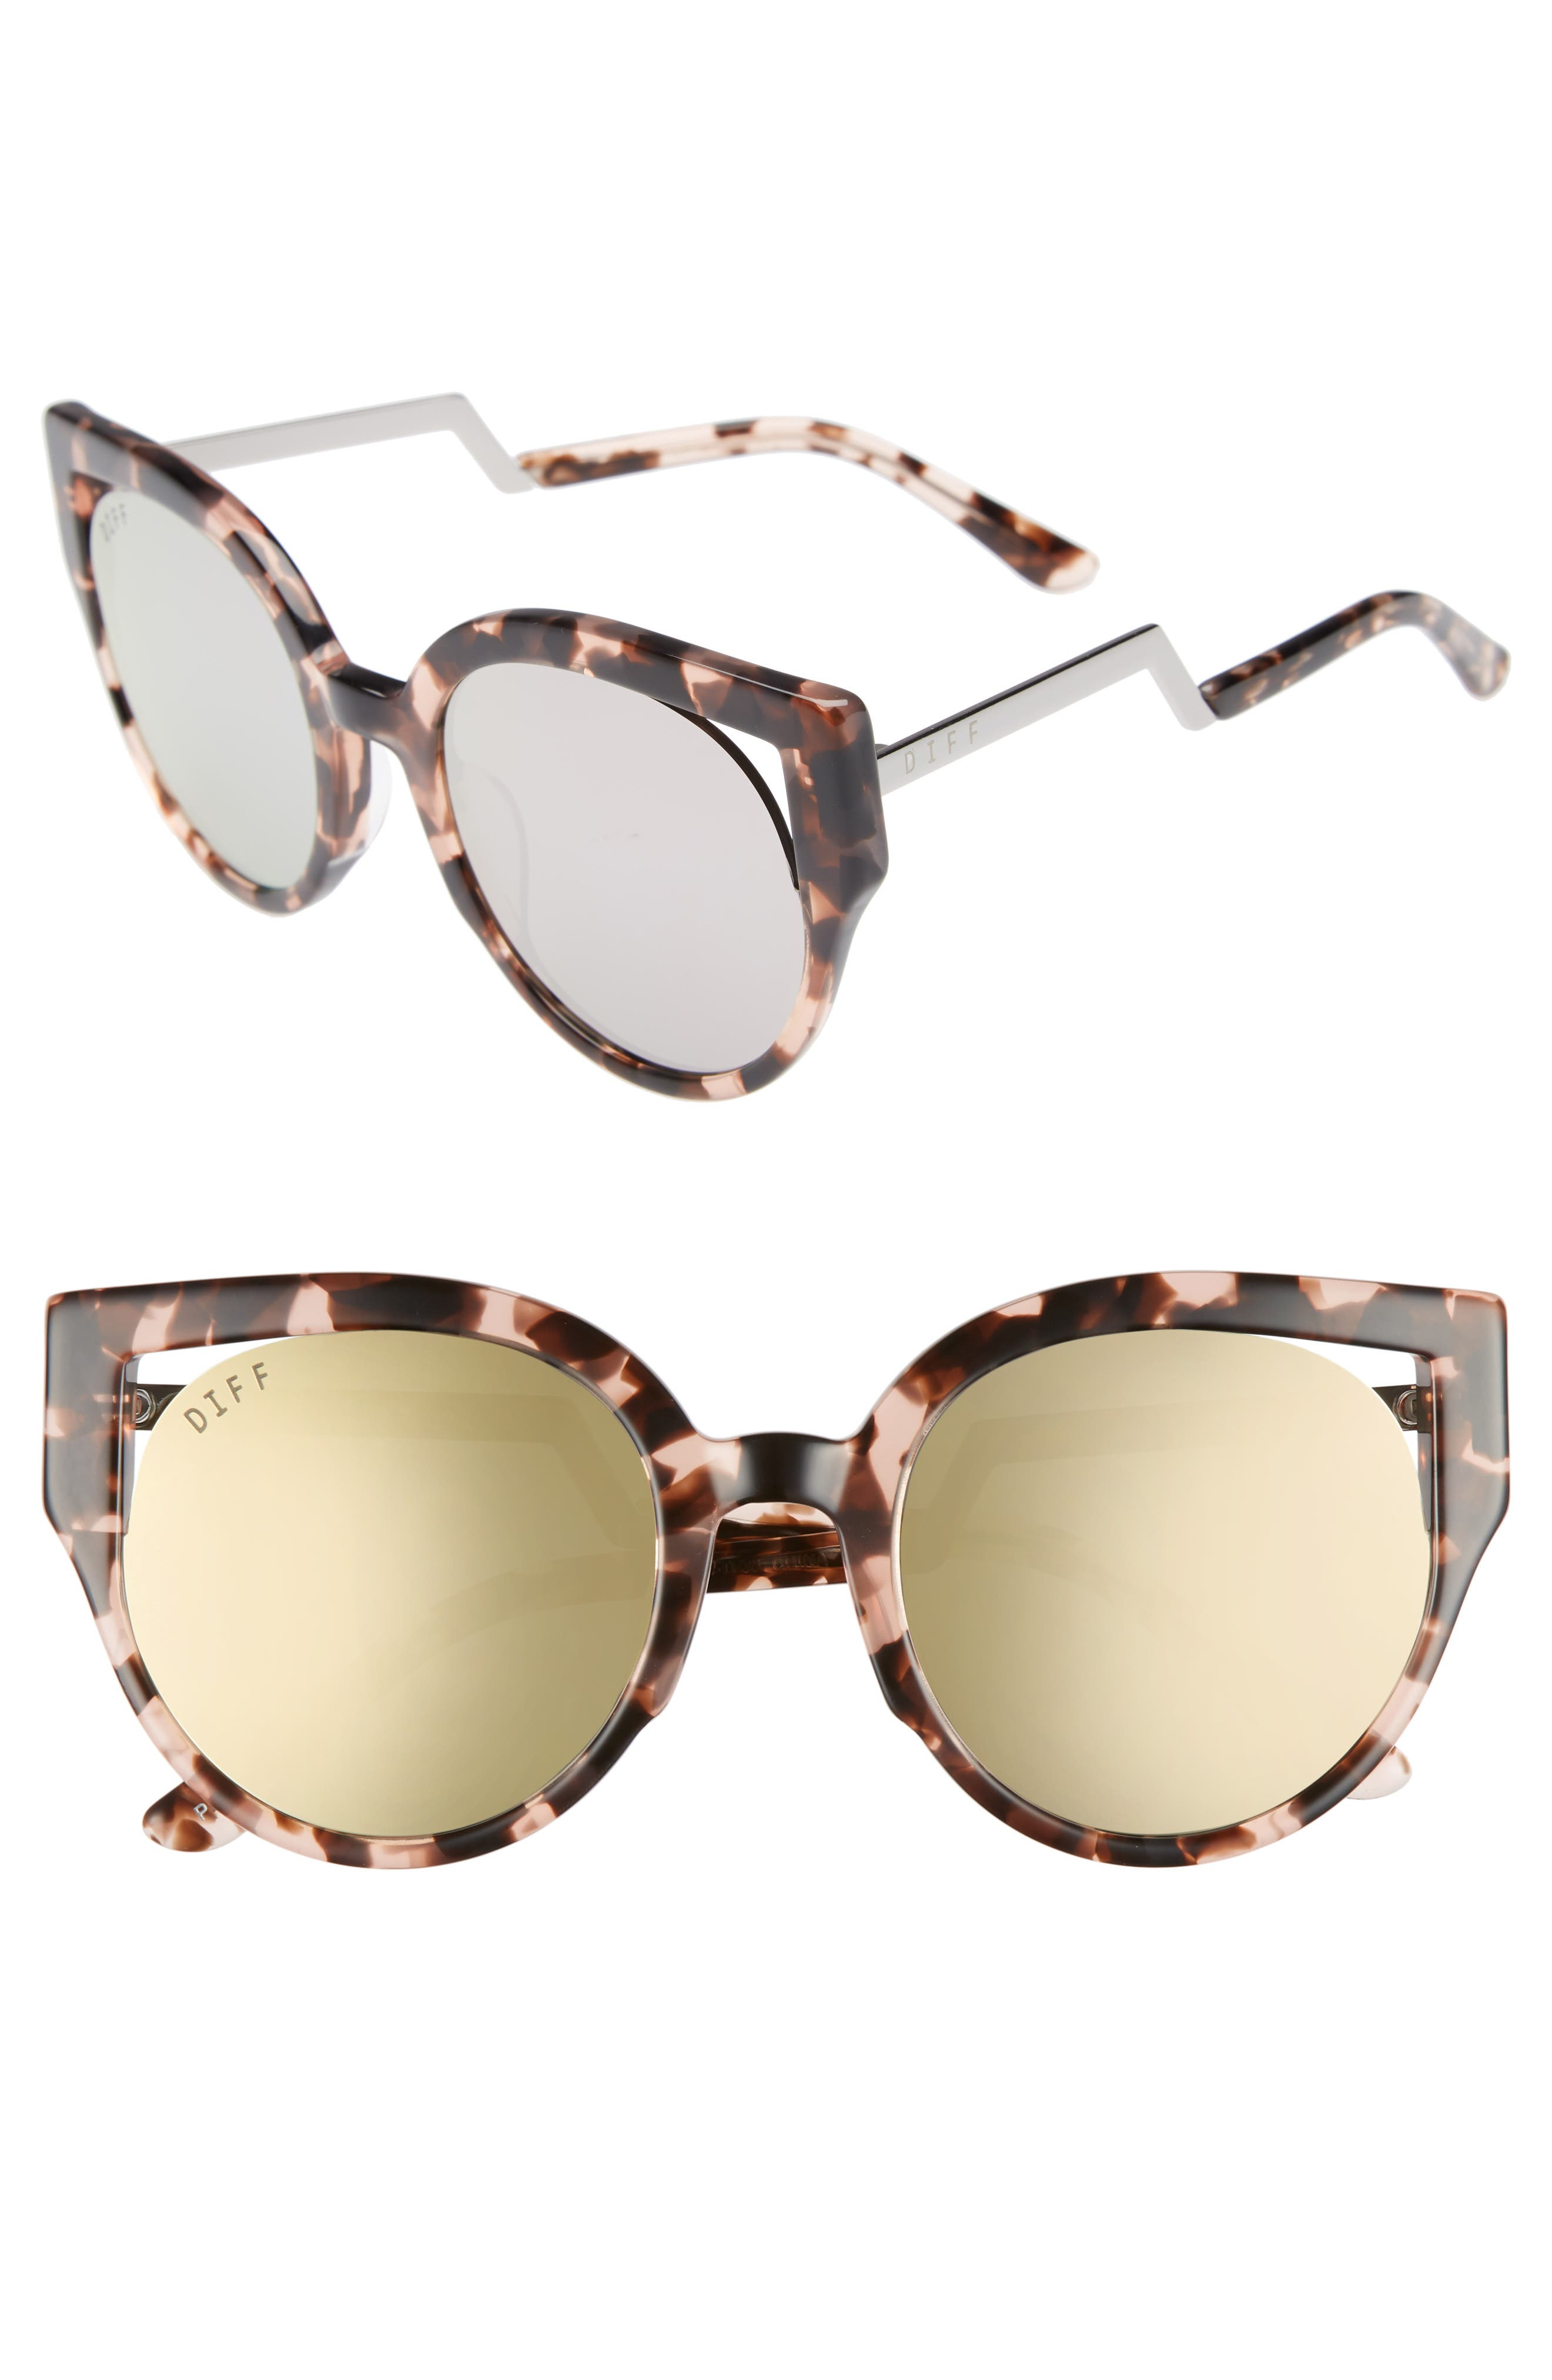 Penny 55mm Cat Eye Sunglasses,                         Main,                         color, Himalayan Tortoise/ Taupe